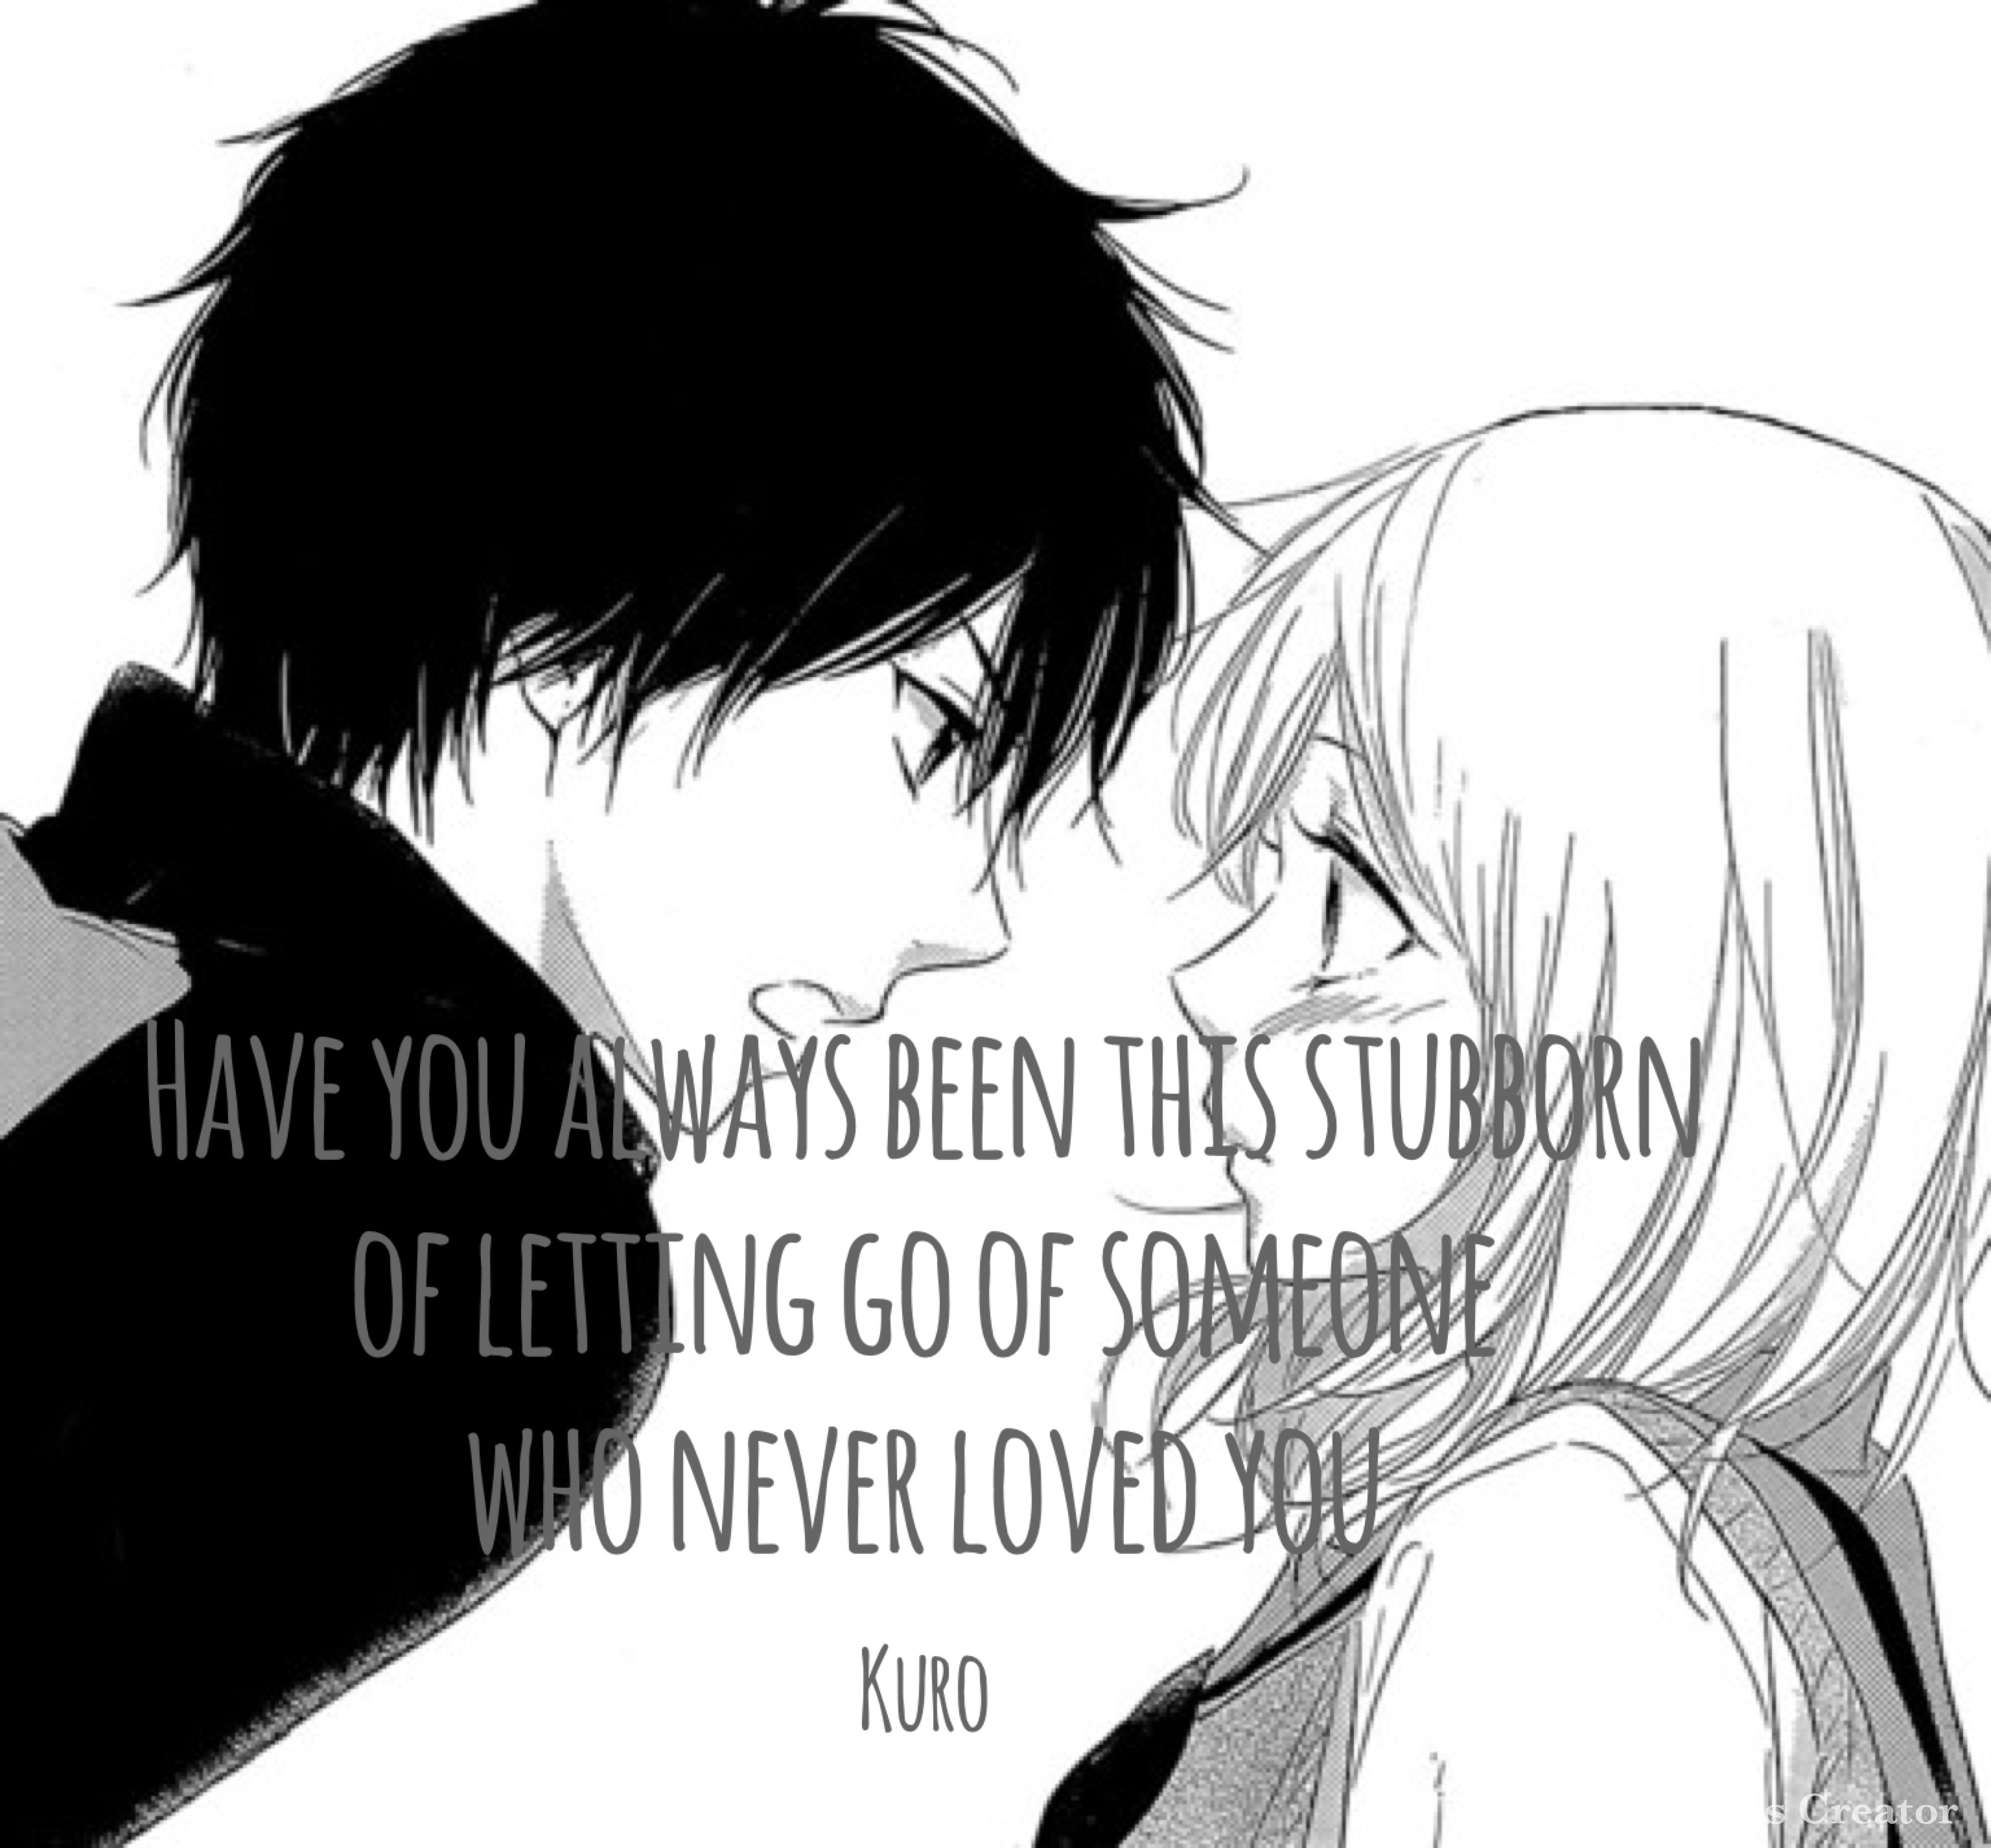 Emo Quotes About Suicide: Pin By I Love Anime On Anime Quotes